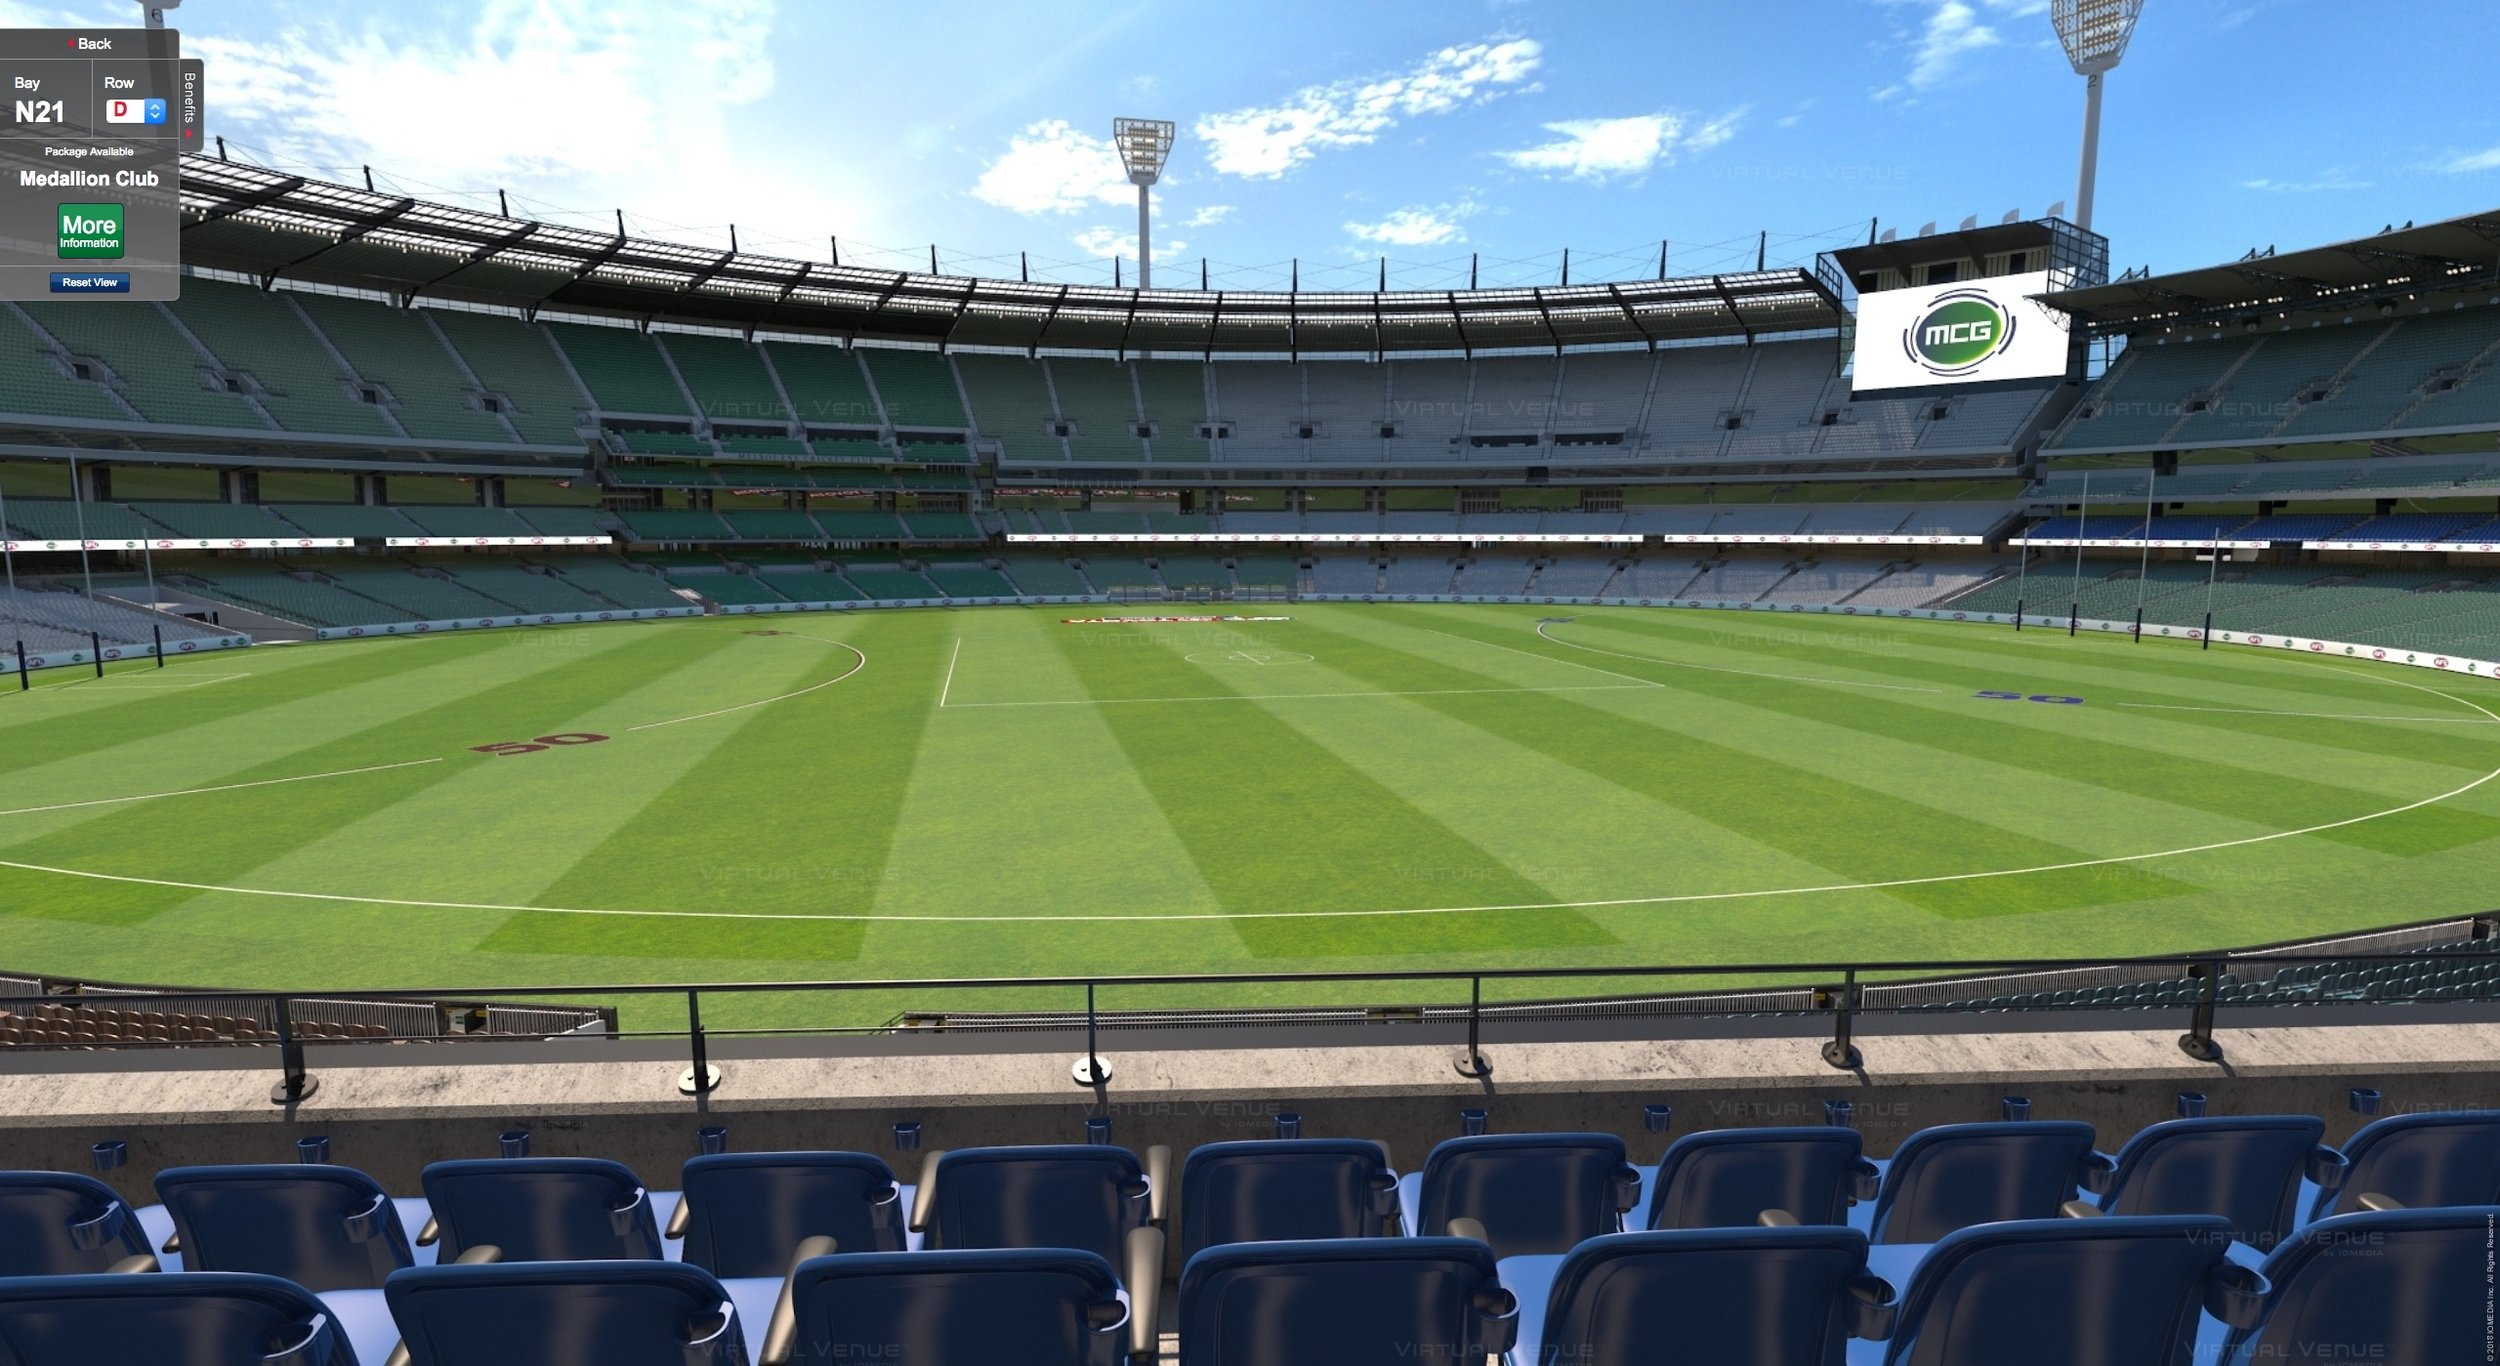 Carlton v Collingwood MCG Medallion Club seating